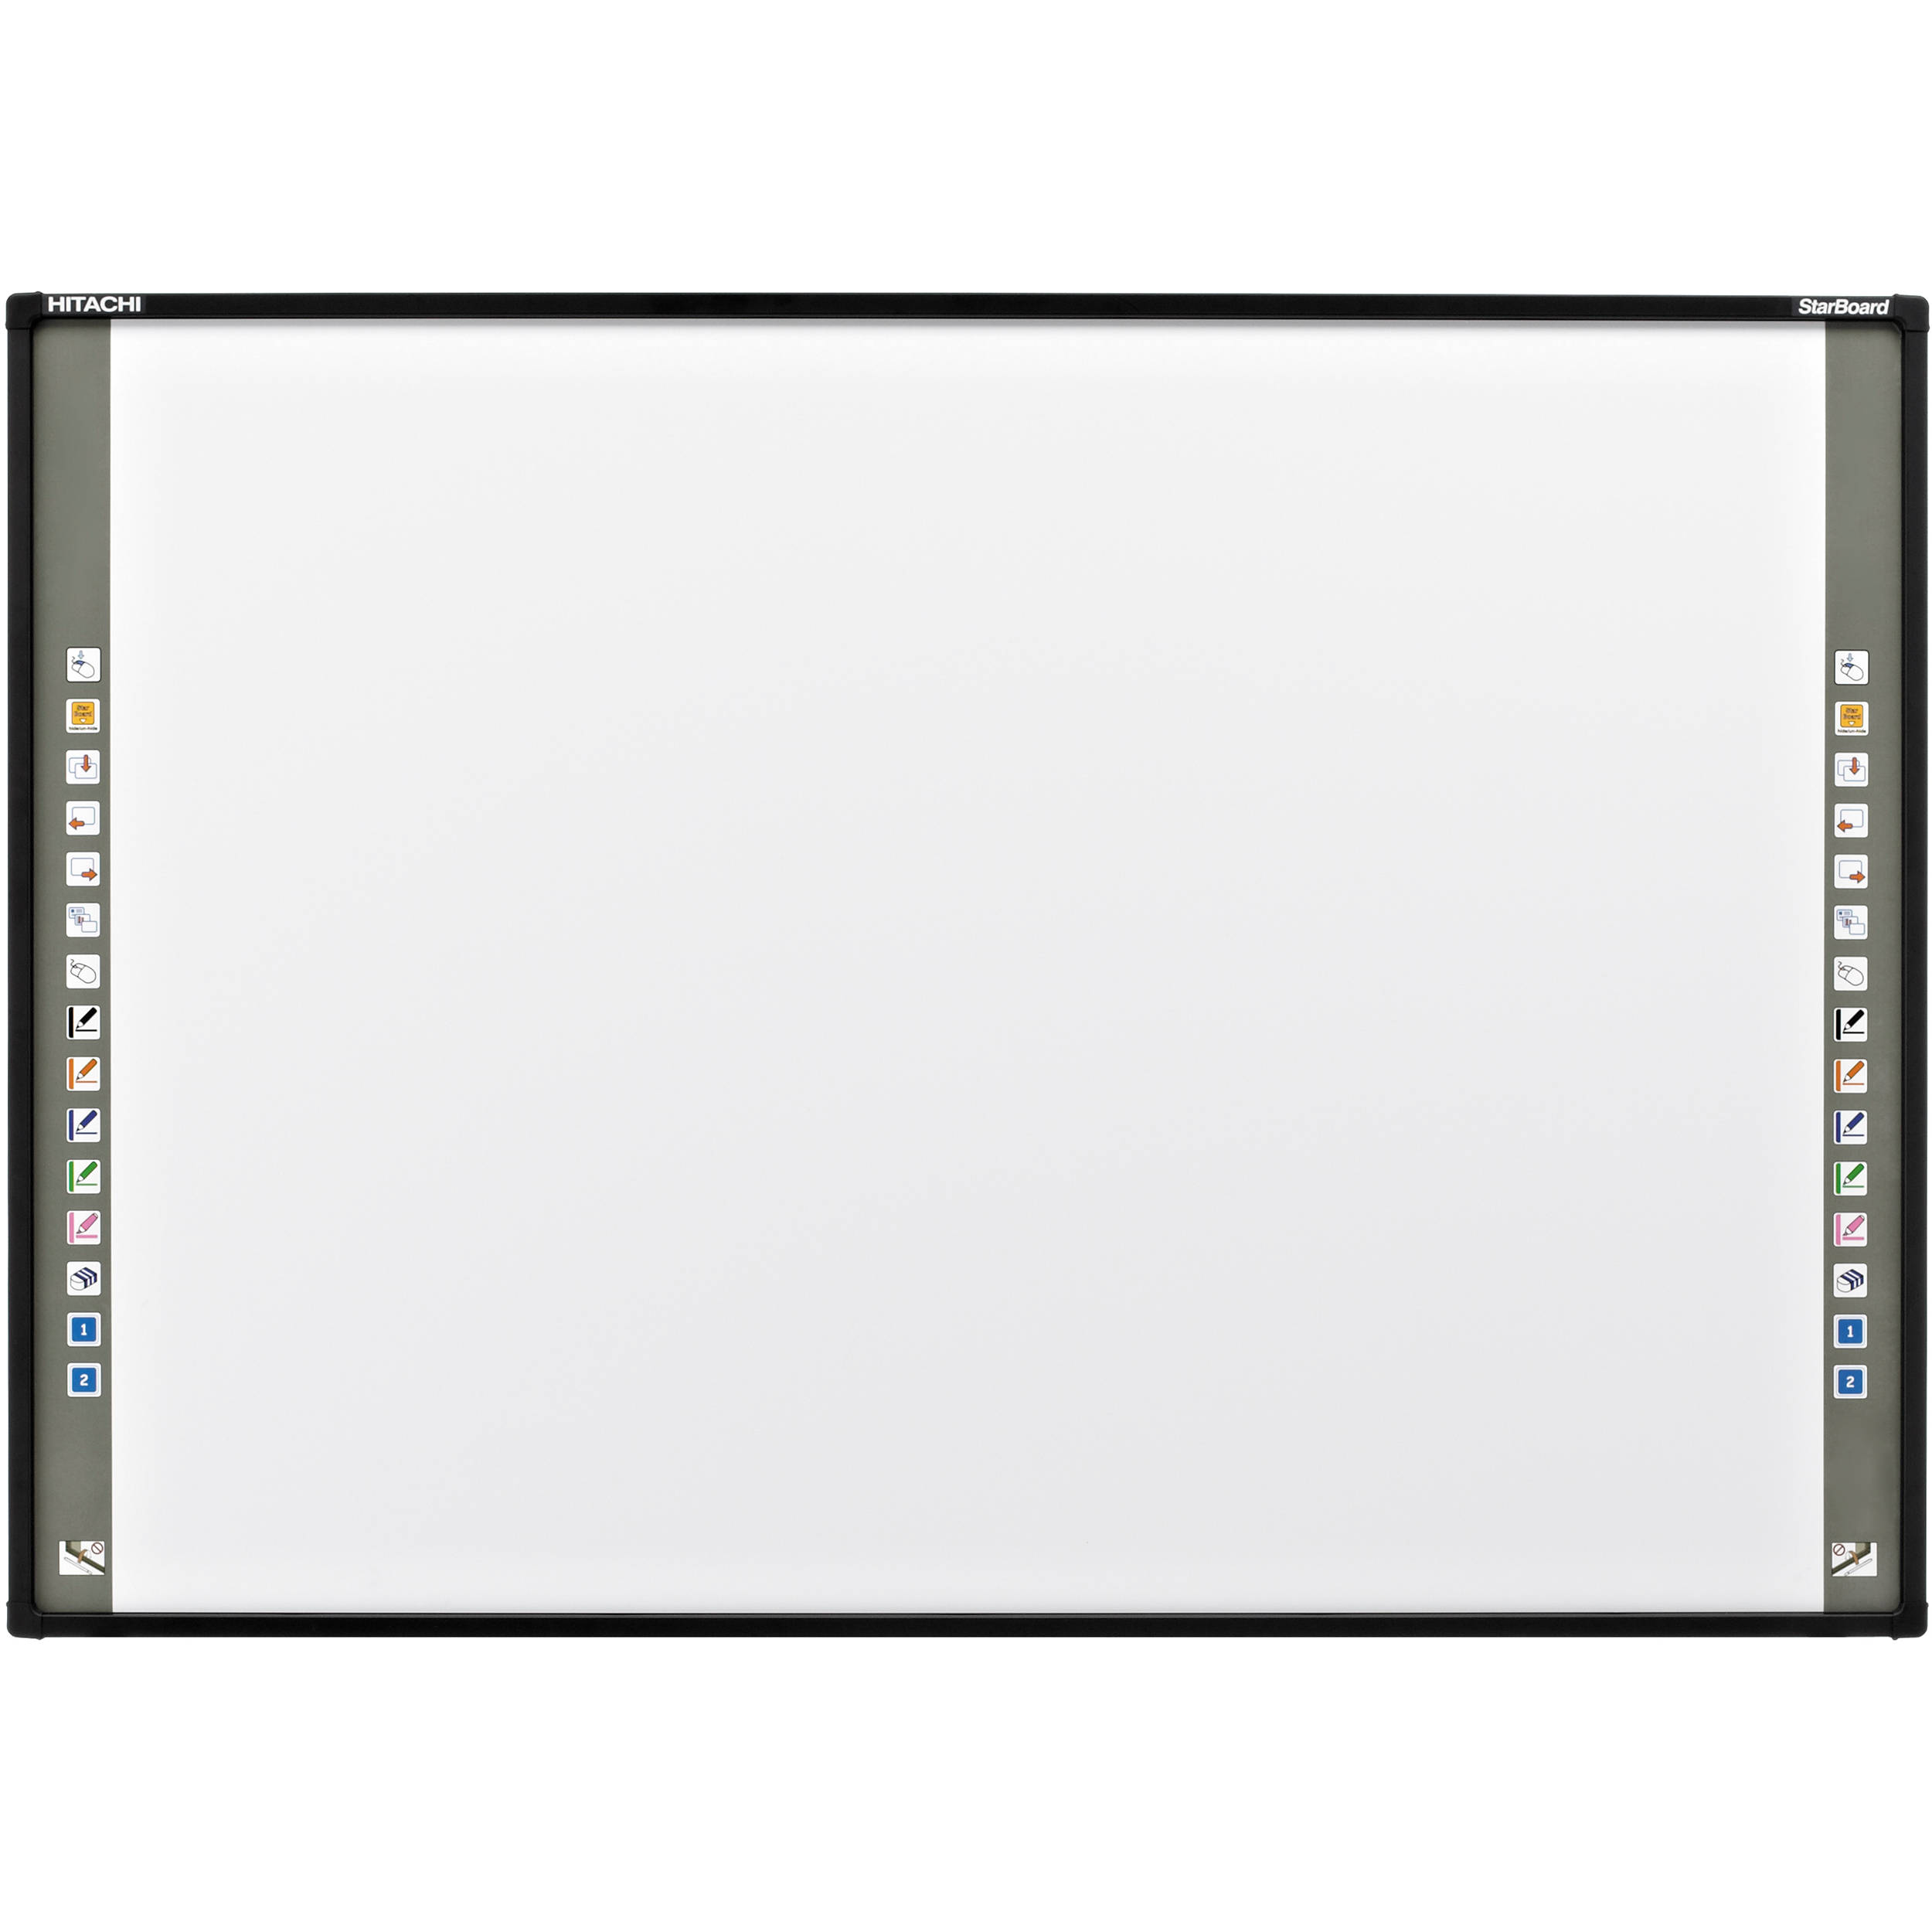 hitachi fx79e1 starboard interactive whiteboard - Electronic Whiteboard